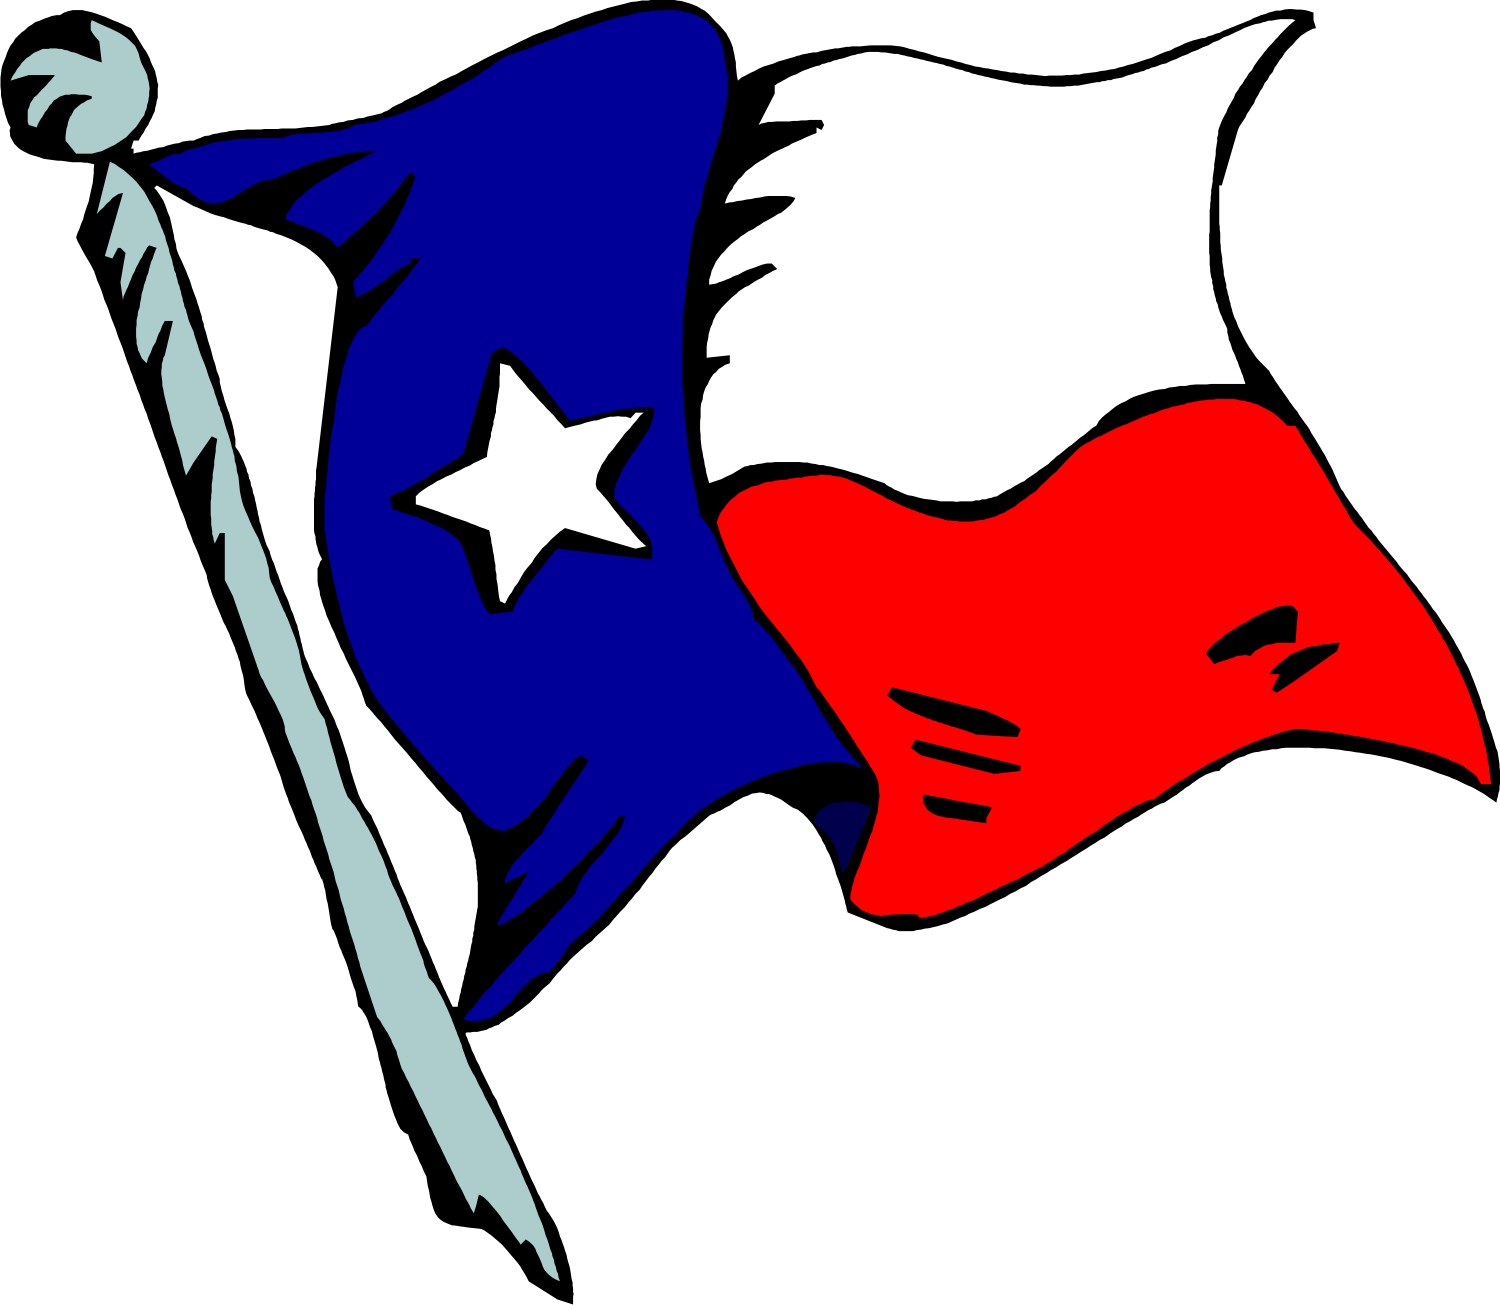 American Flag clipart texas Texas outline Texas free outline